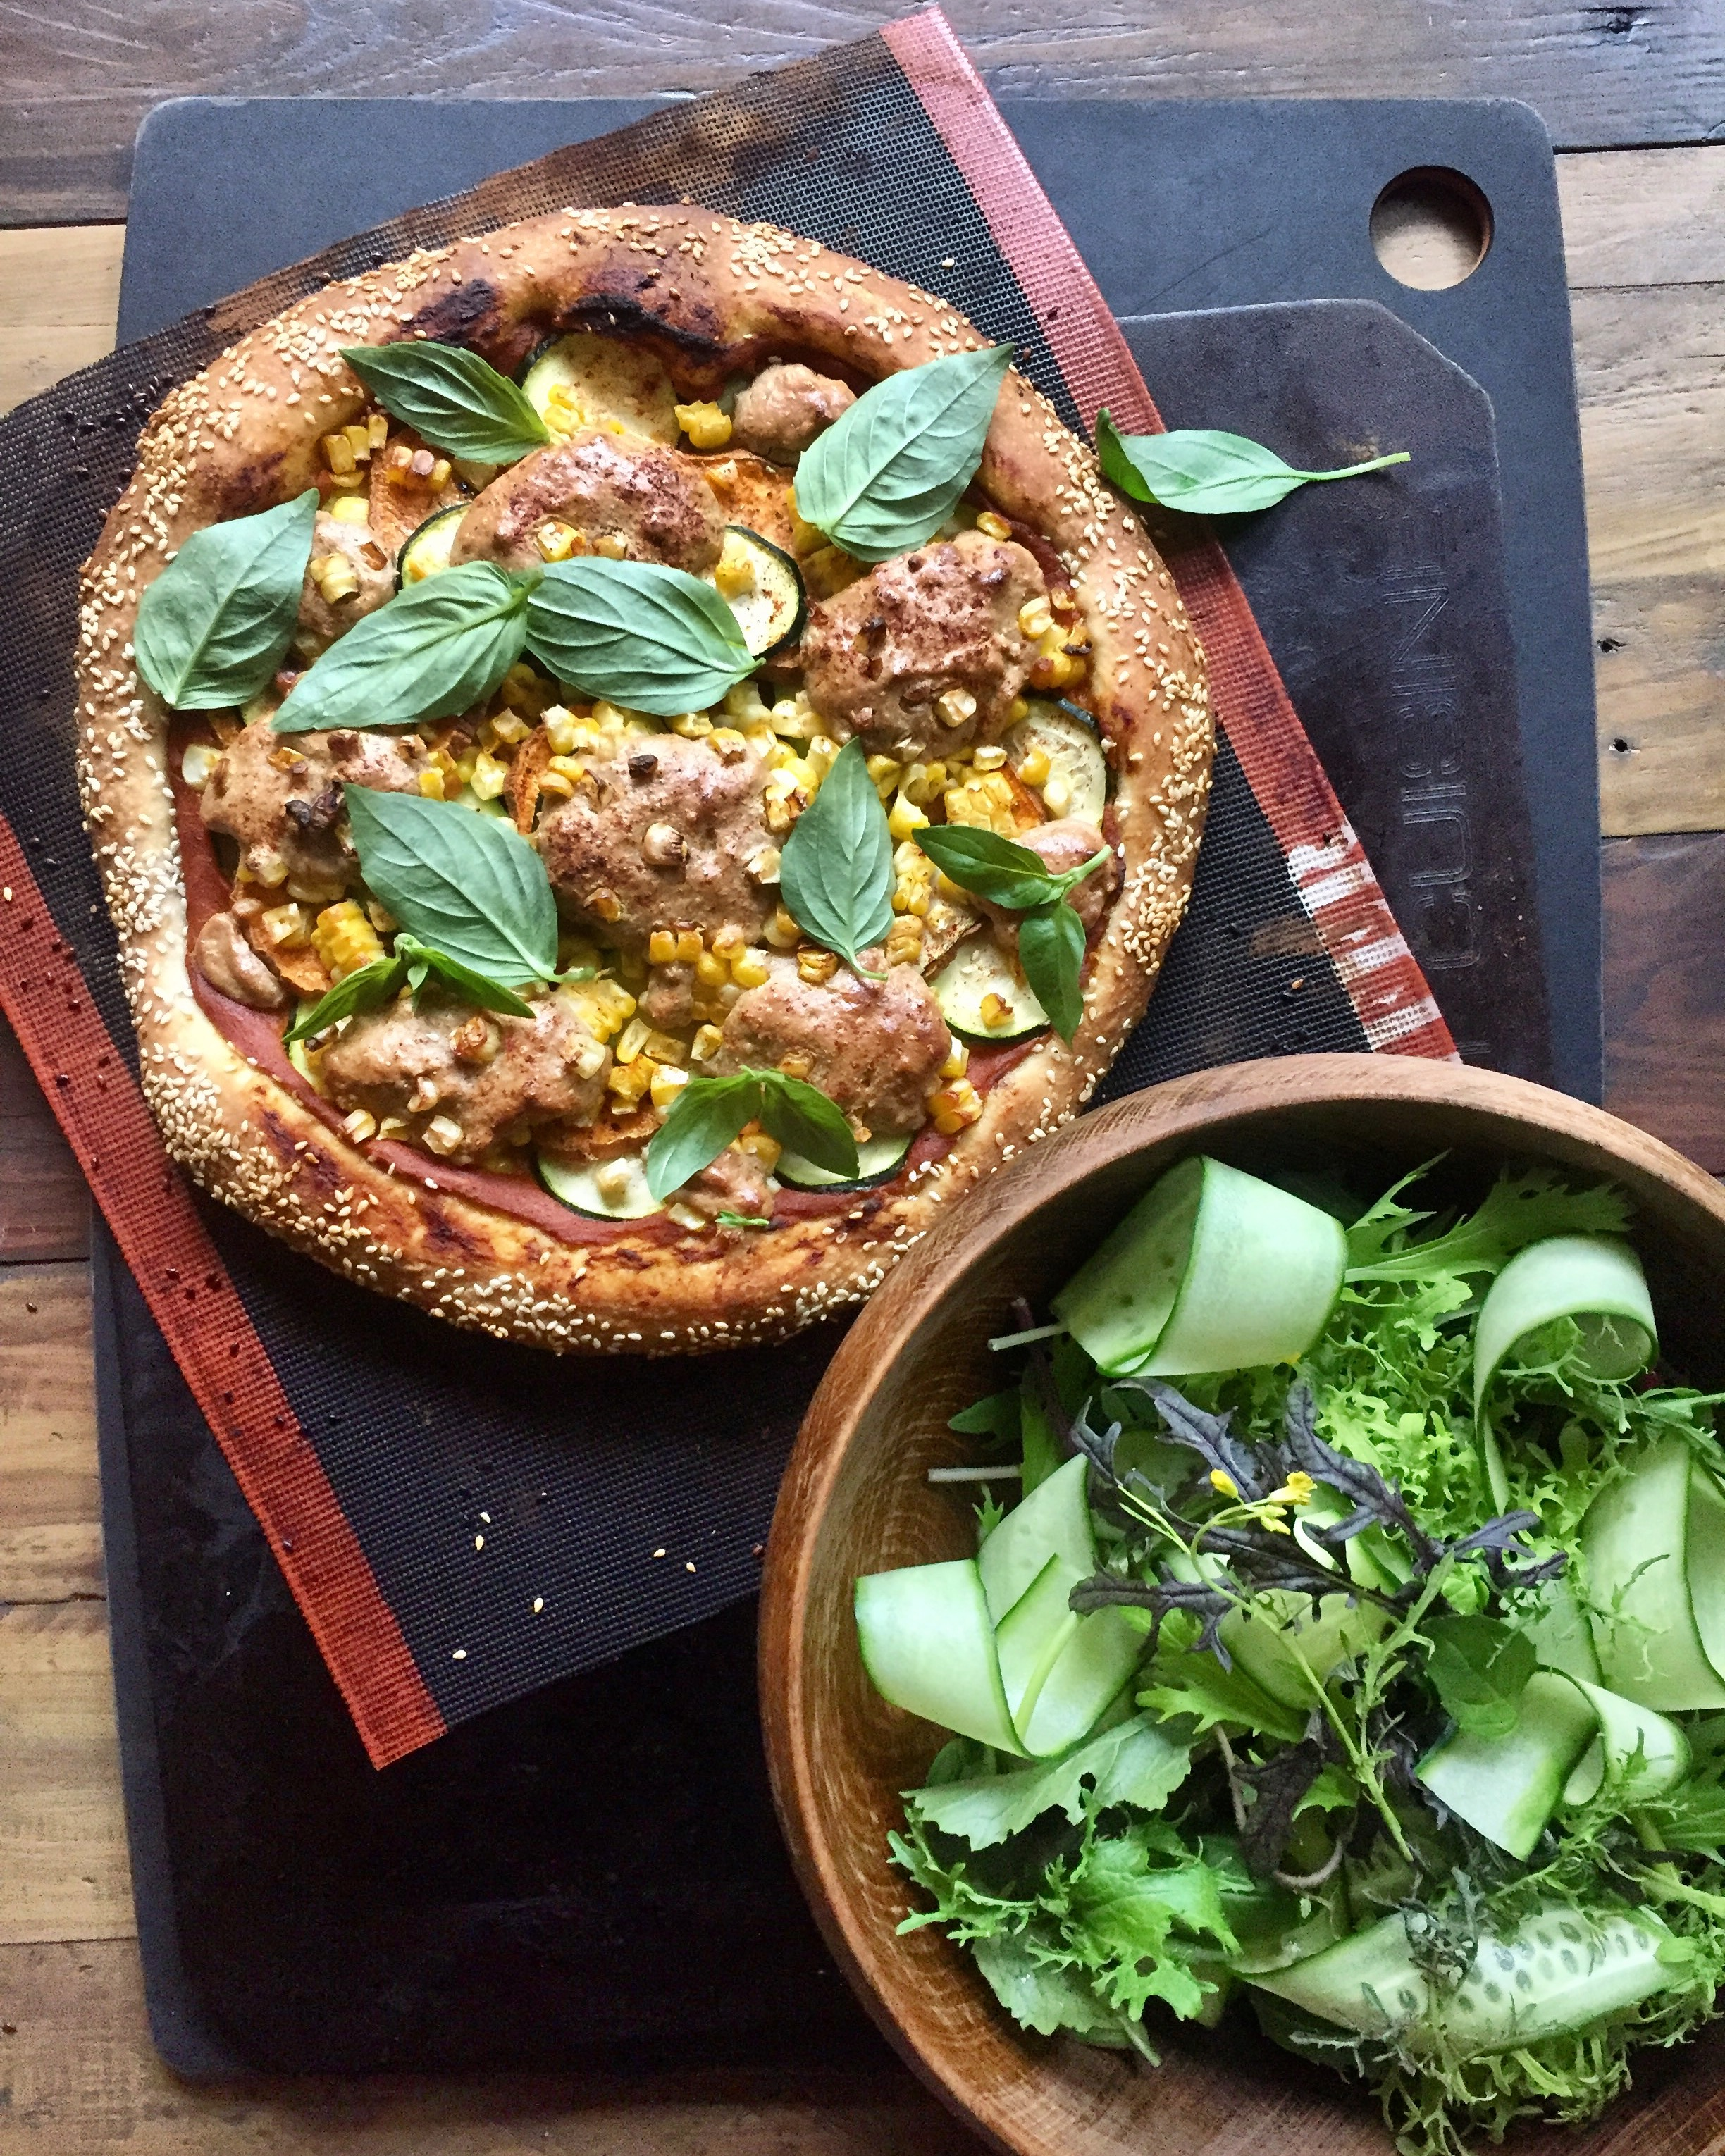 Marinara sauce, zucchini, sweetcorn, cashew mozzarella and basil pizza with a verdant salad makes for scrumptious dinner for two.